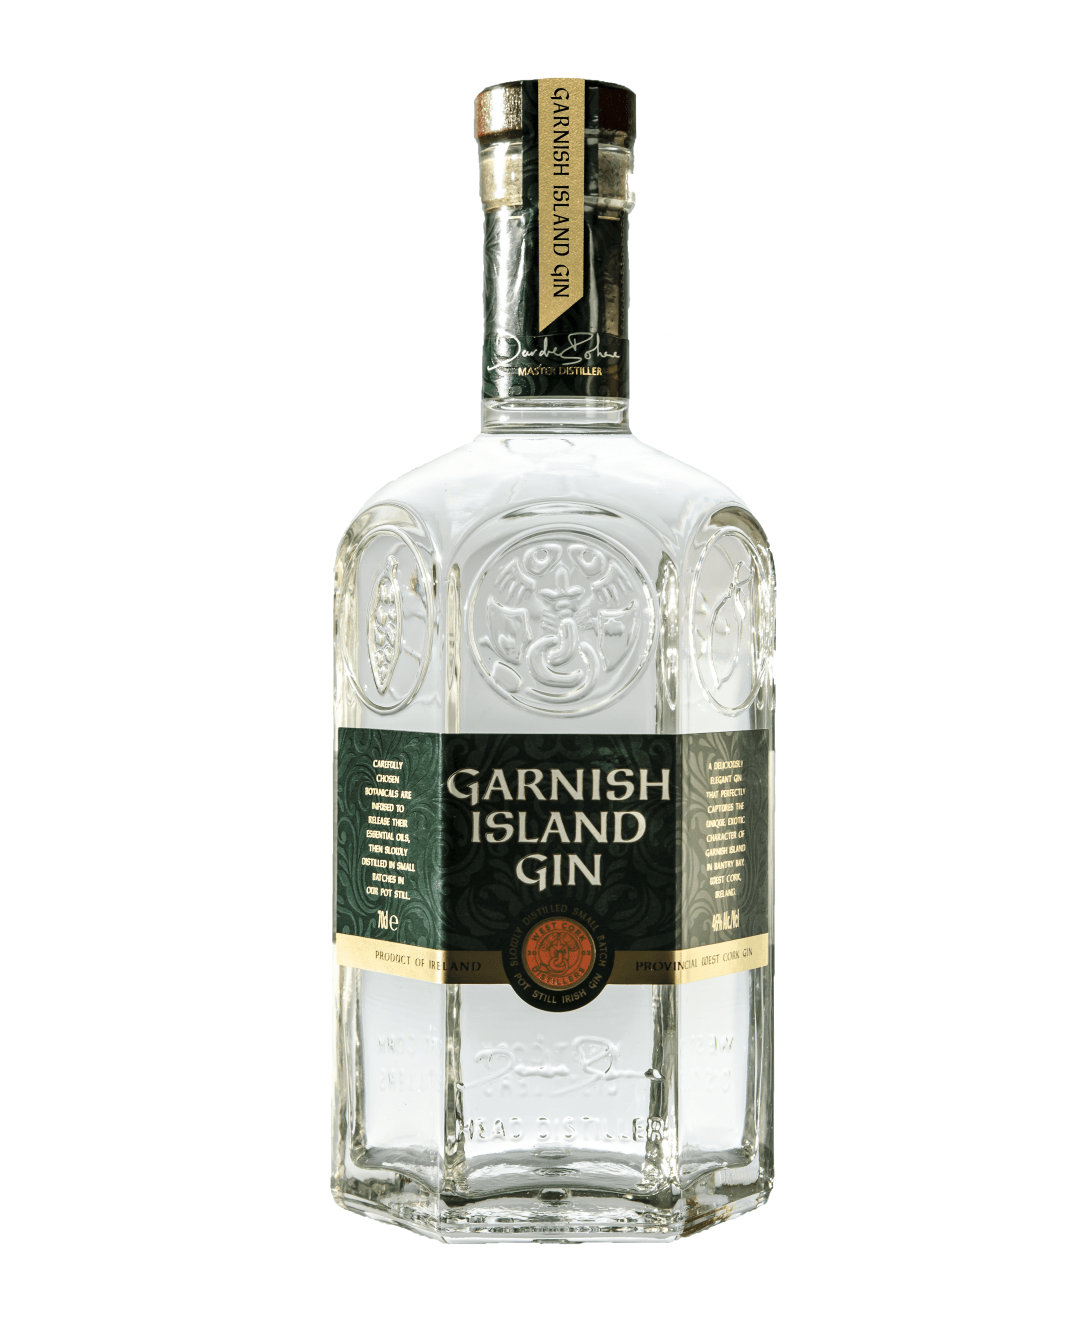 Review: Garnish Island Gin